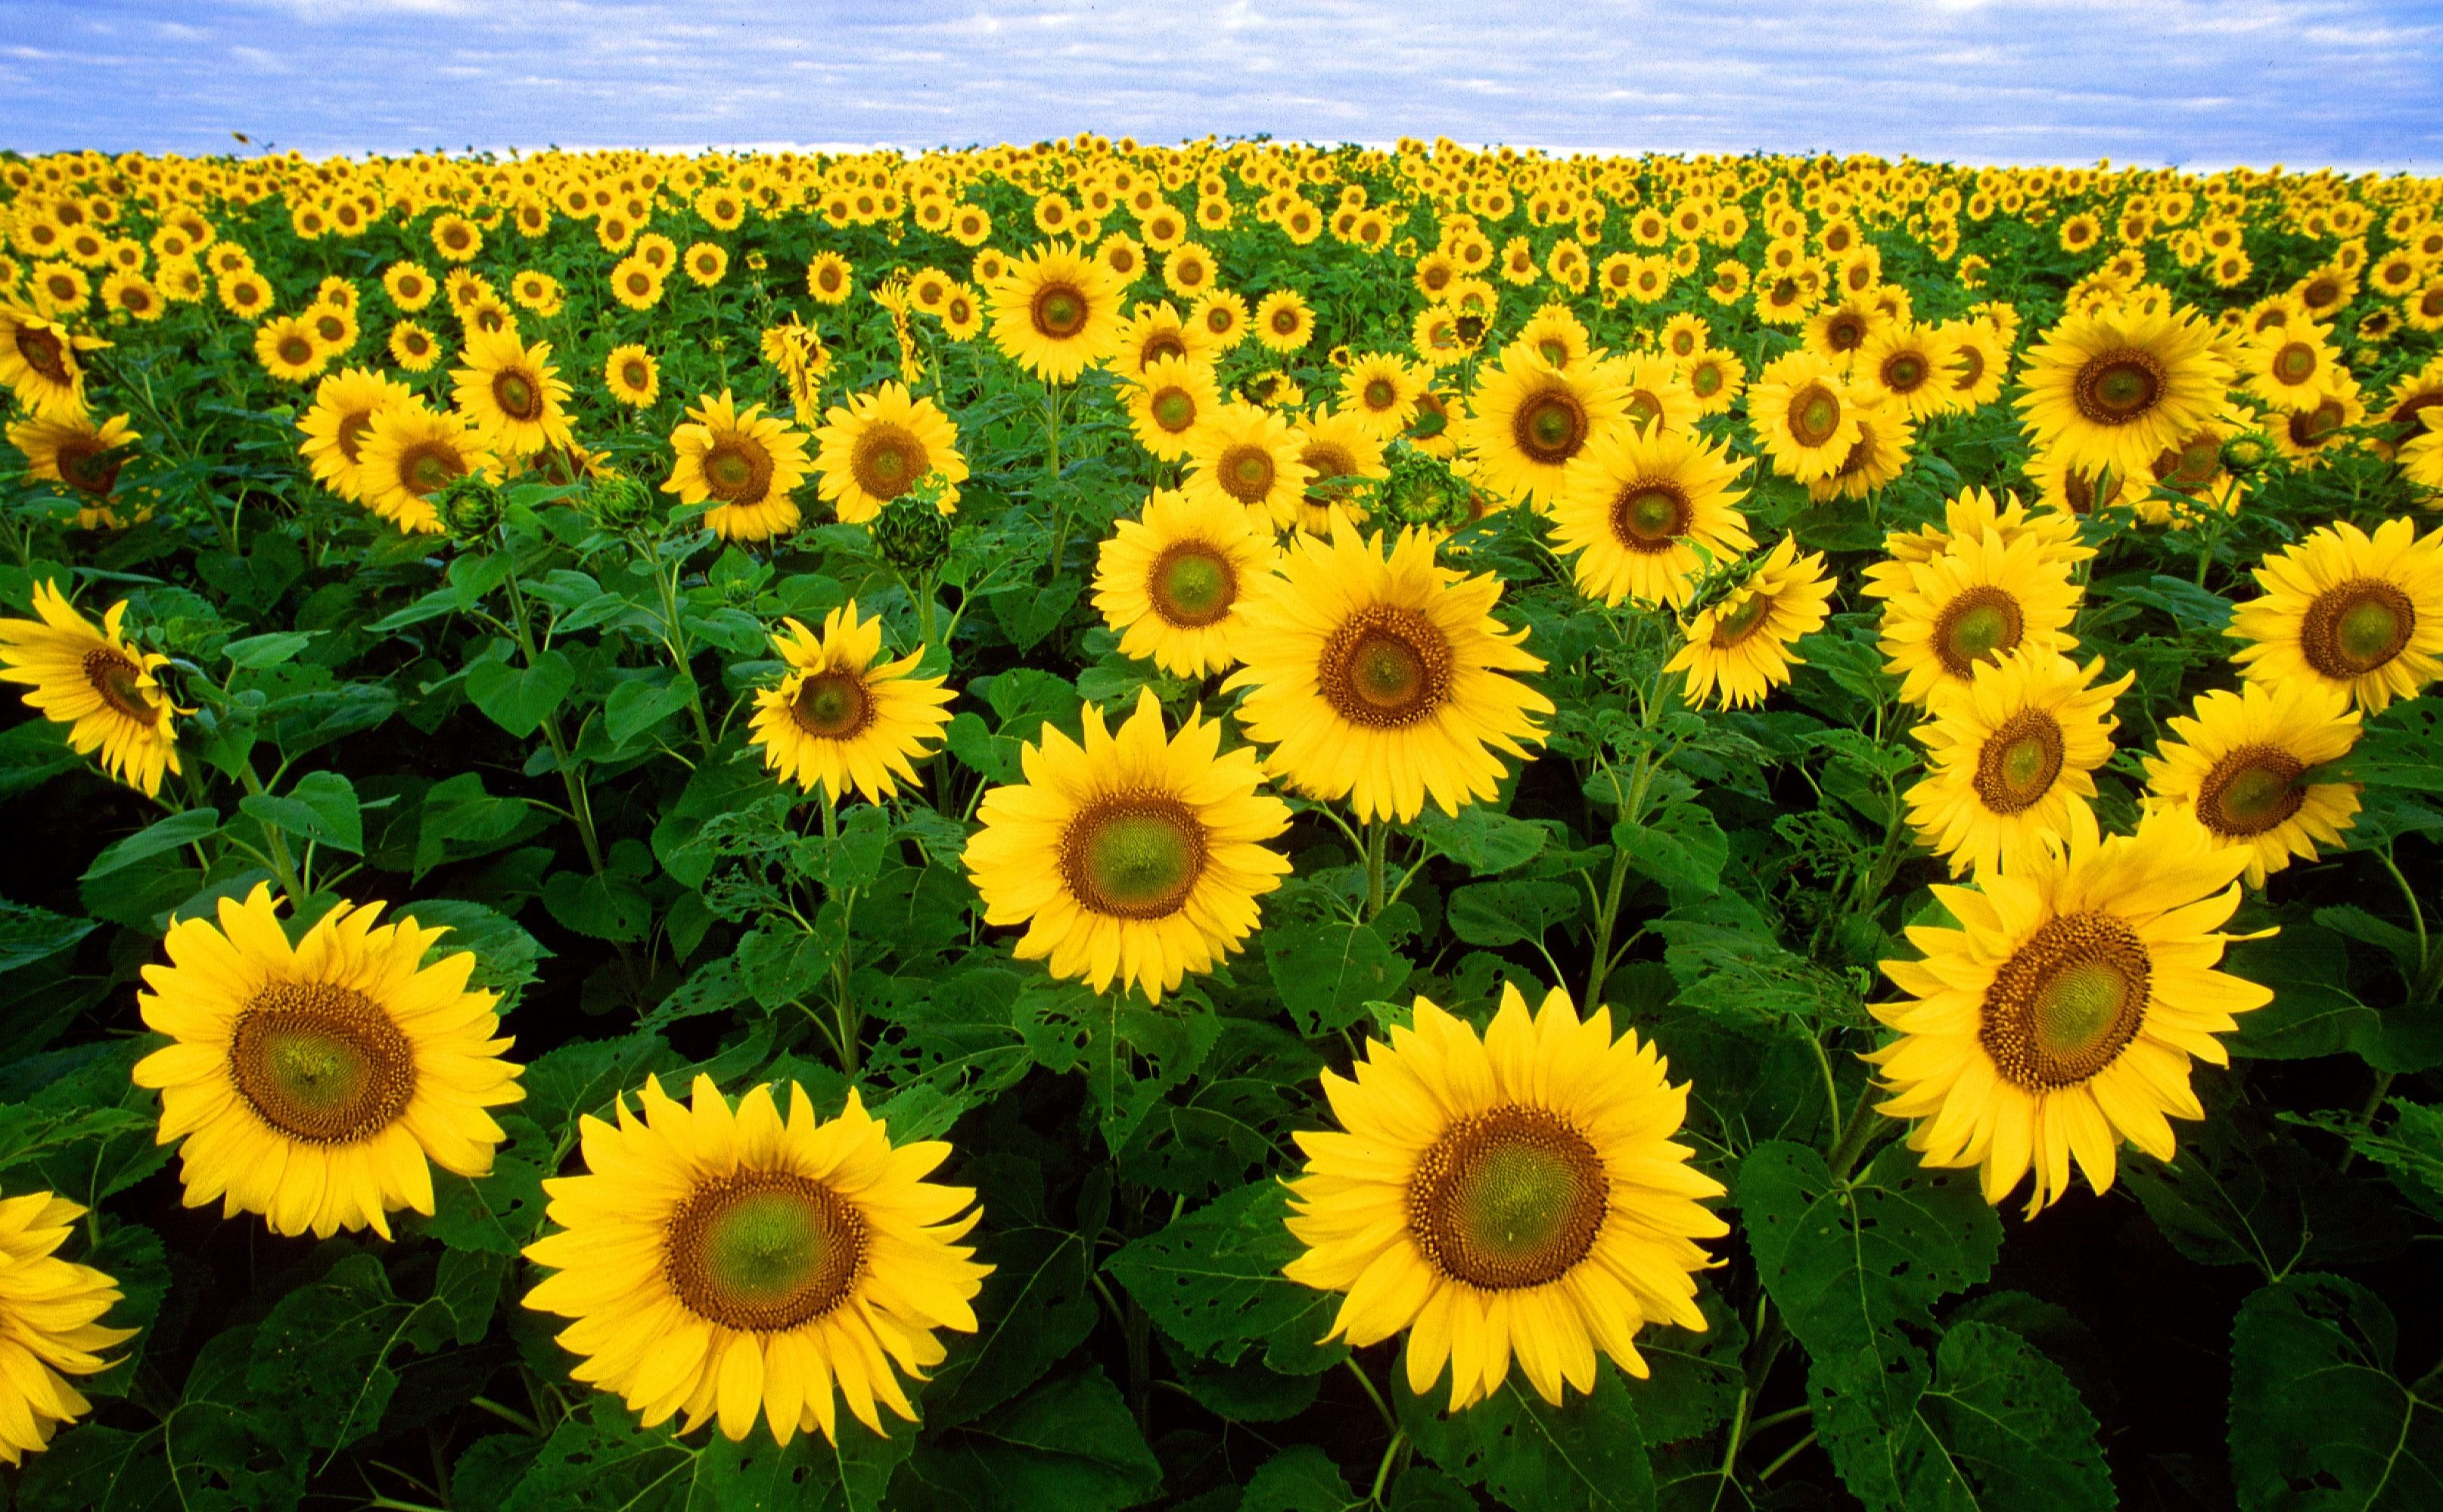 Descubre Ideas Sobre Campos De Girasoles Sunflower Field